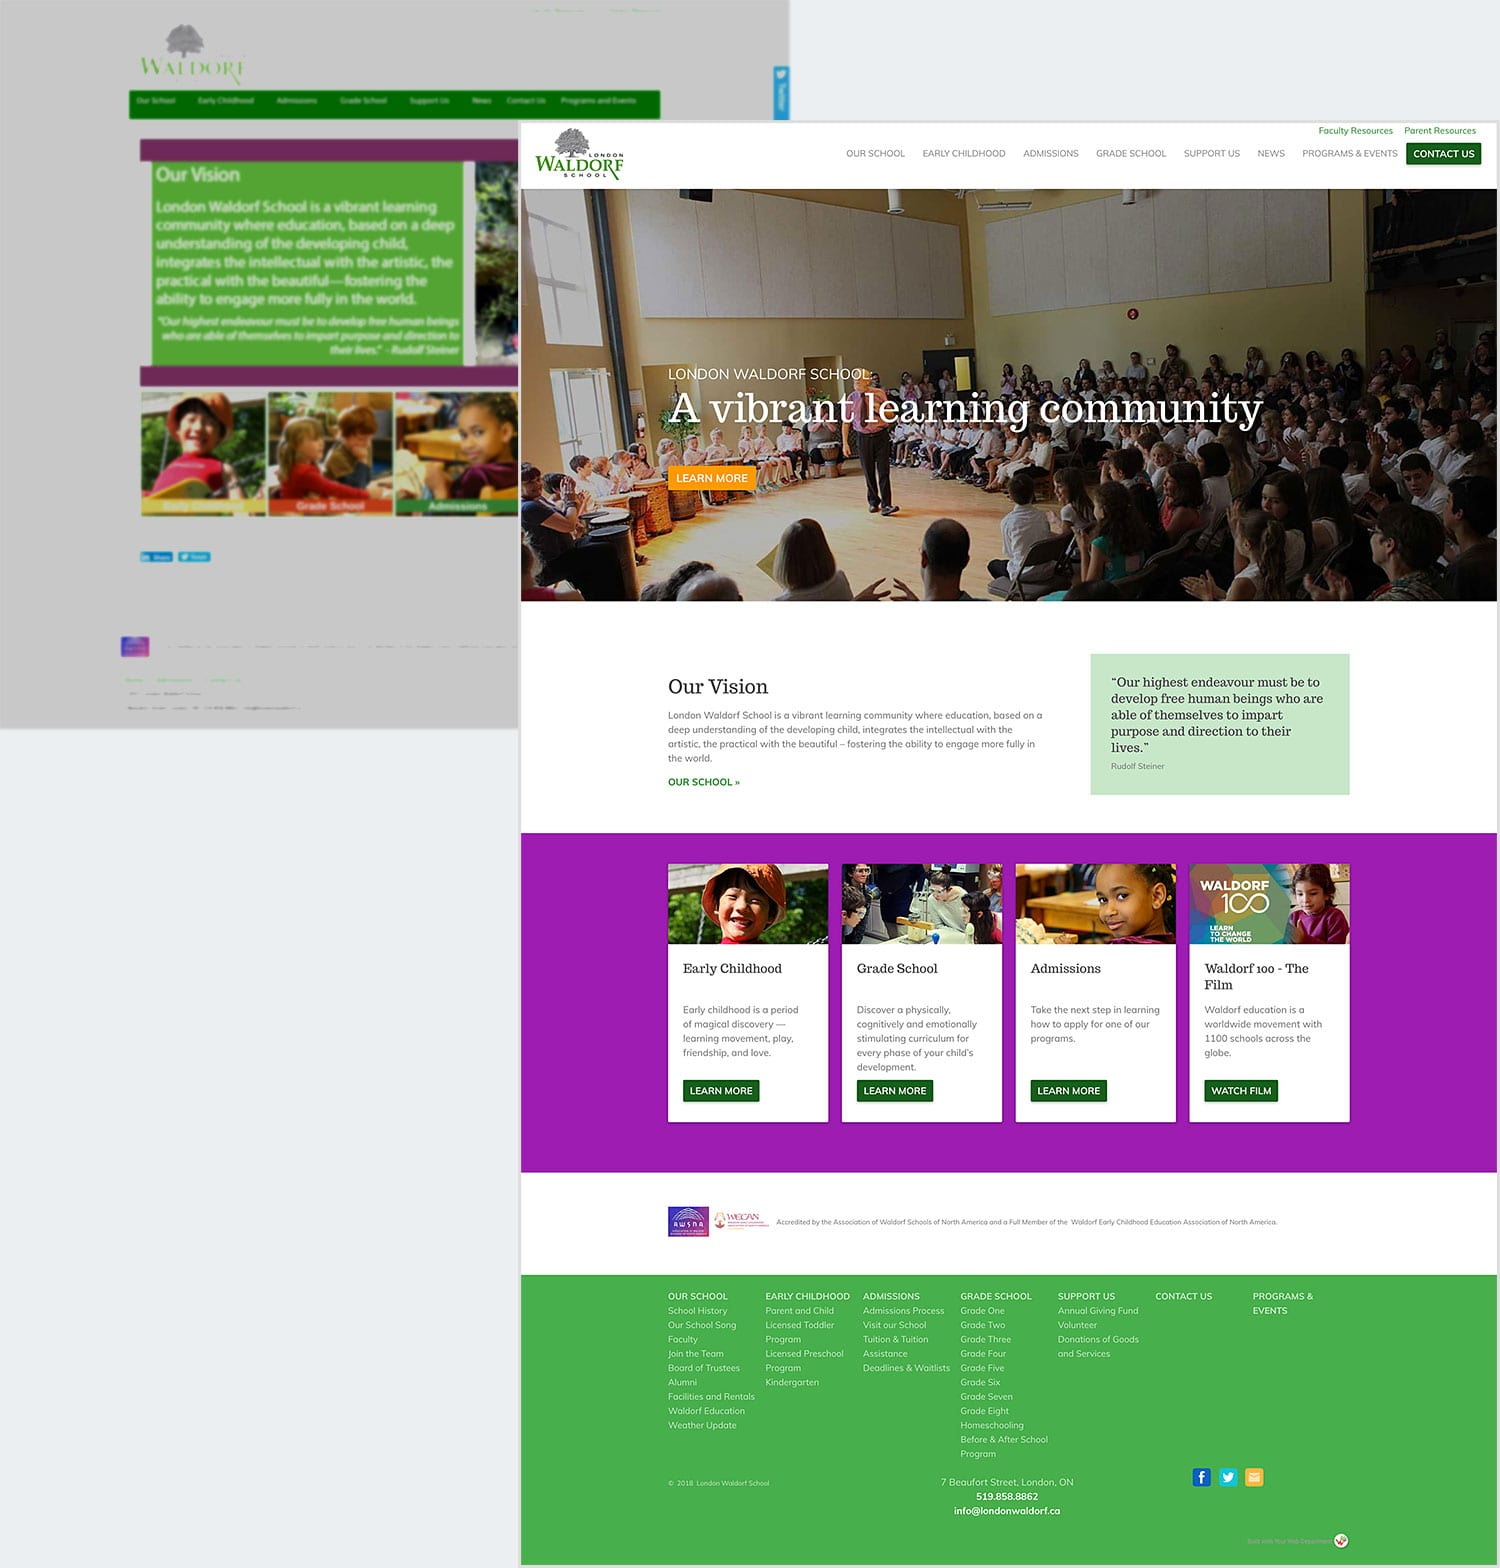 Website Transformation: Lodon Waldorf School